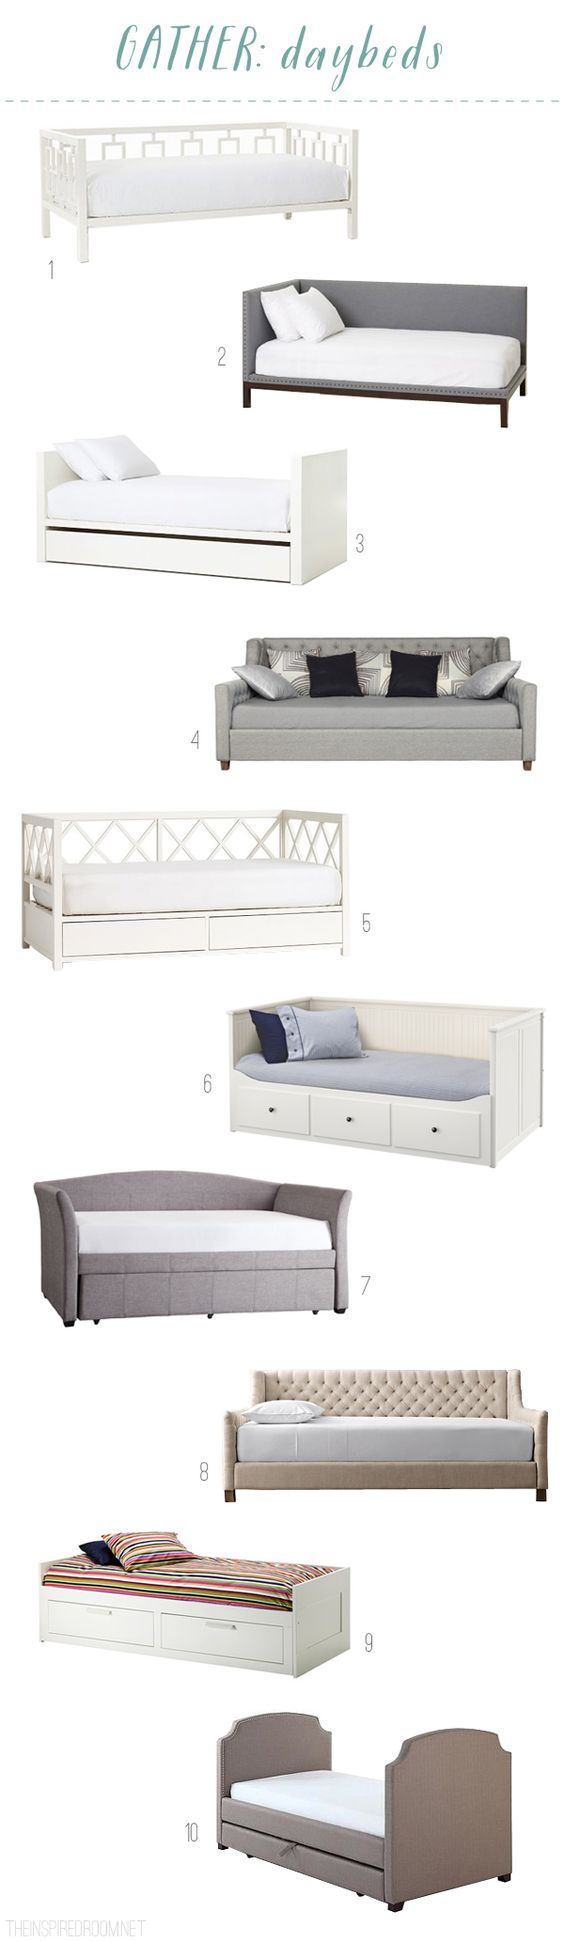 Daybed Round Up - The Inspired Room blog